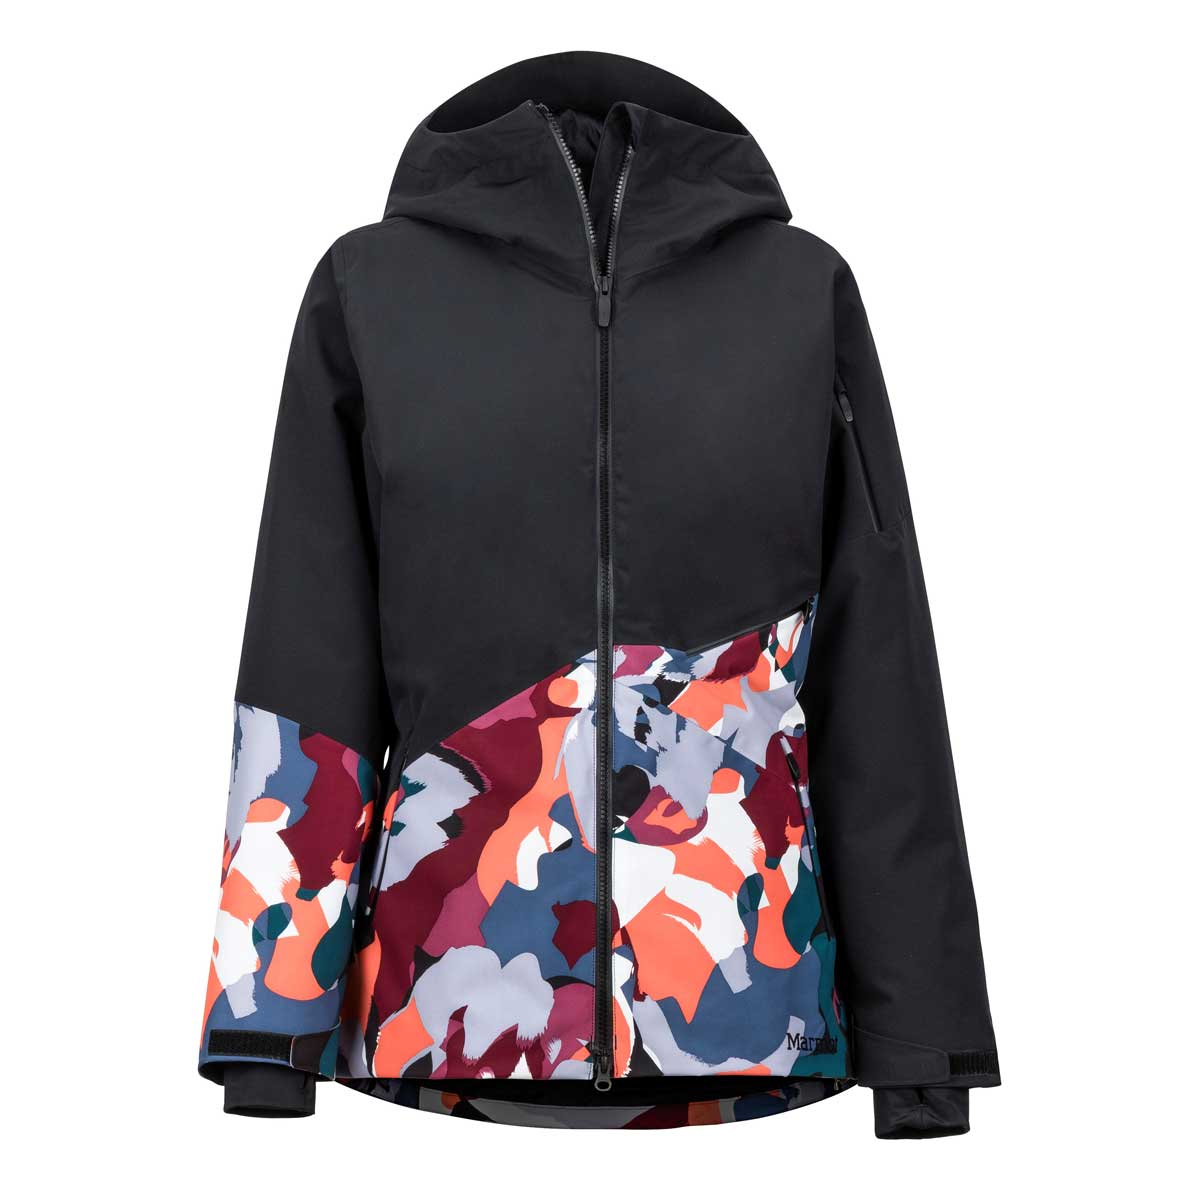 Marmot Women's Pace Jacket in Black and Multi Pop Camo